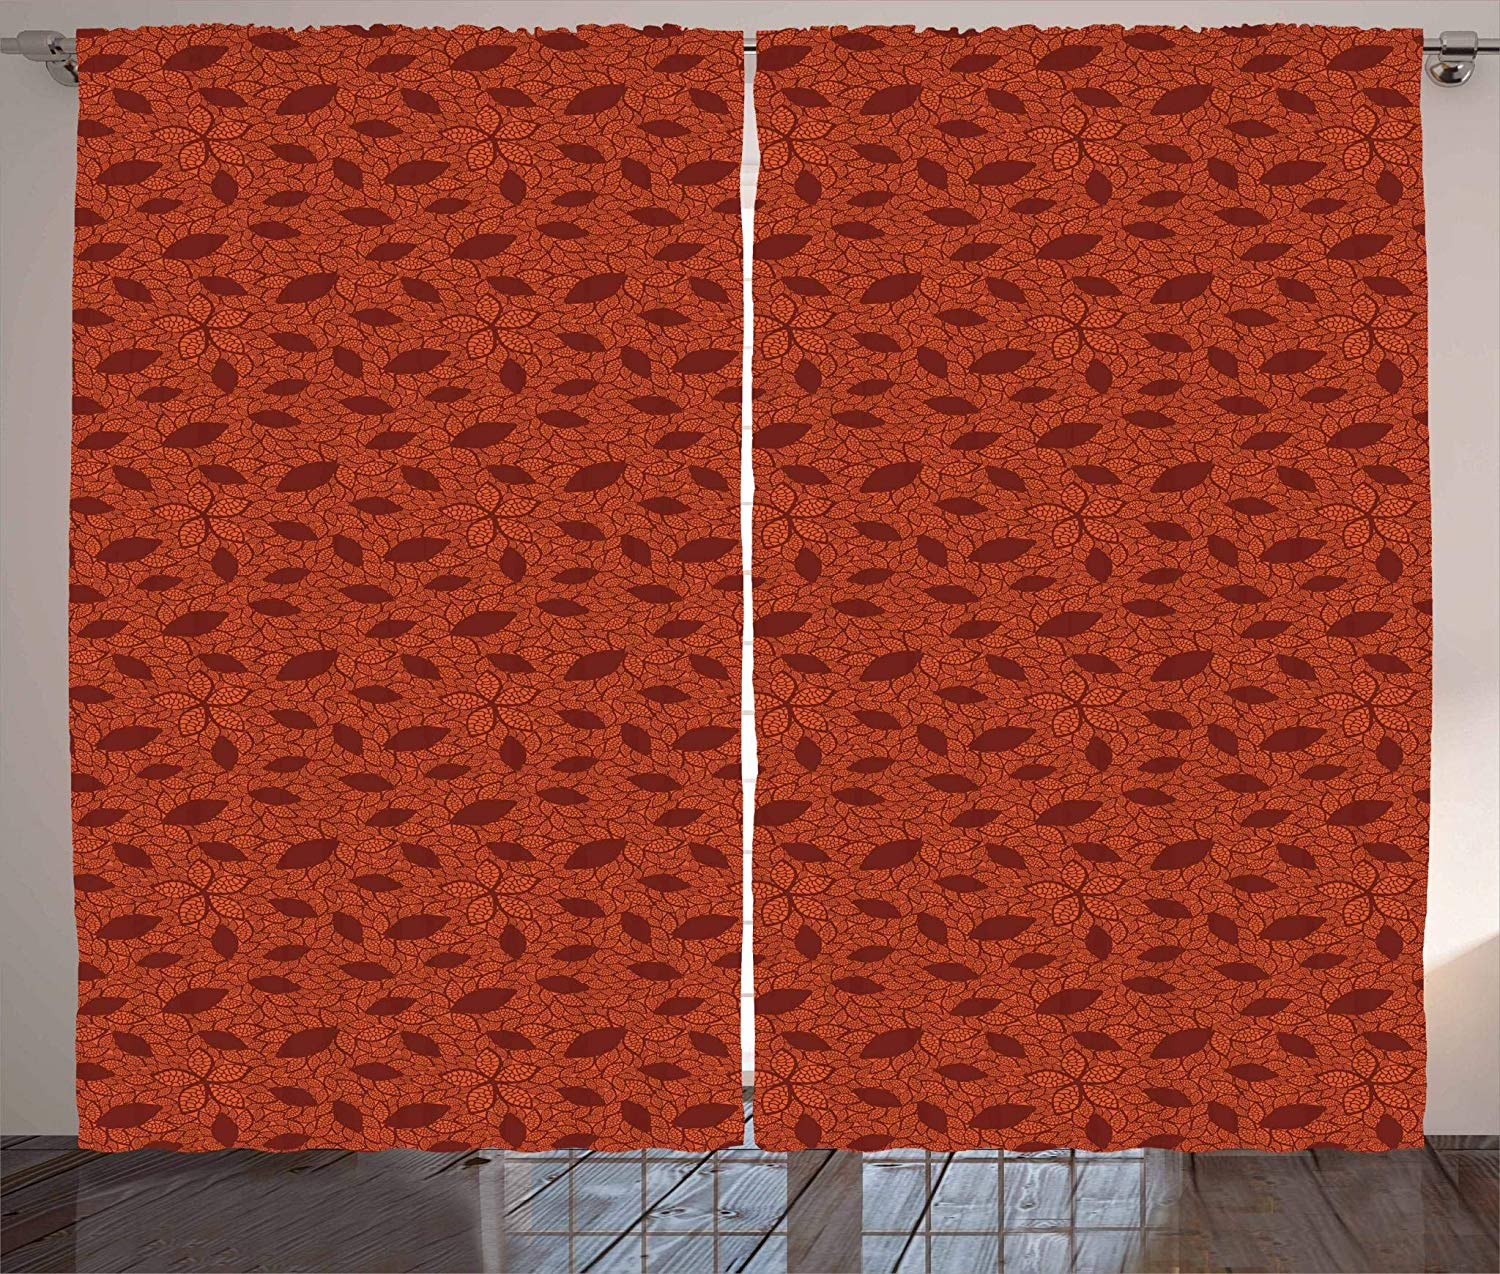 Burnt Orange Curtains Leafage Pattern With Victorian Lace Design Inspired Flower Petals Living Room Bedroom Window Decor Pane